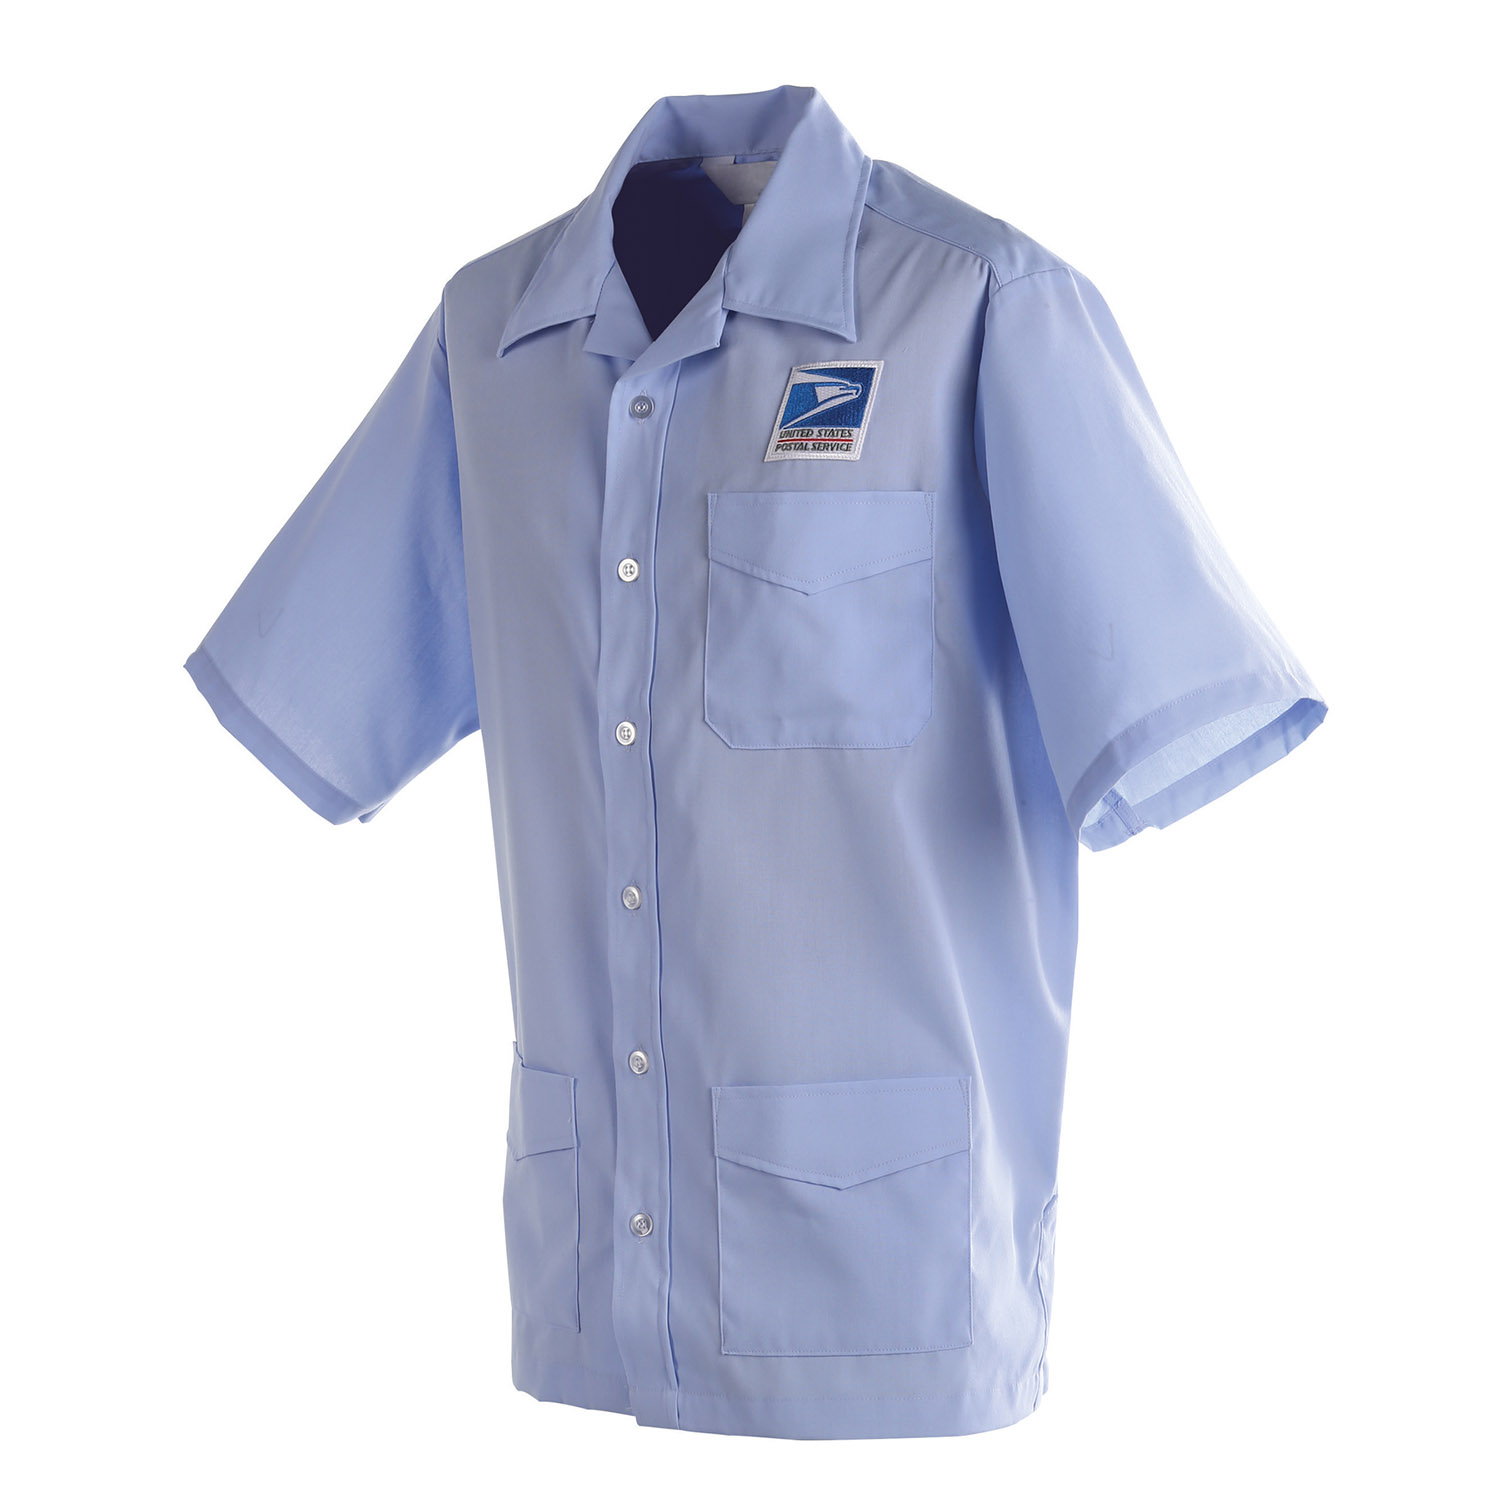 postal uniform shirt jac mens for letter carriers and mot With usps uniforms letter carrier